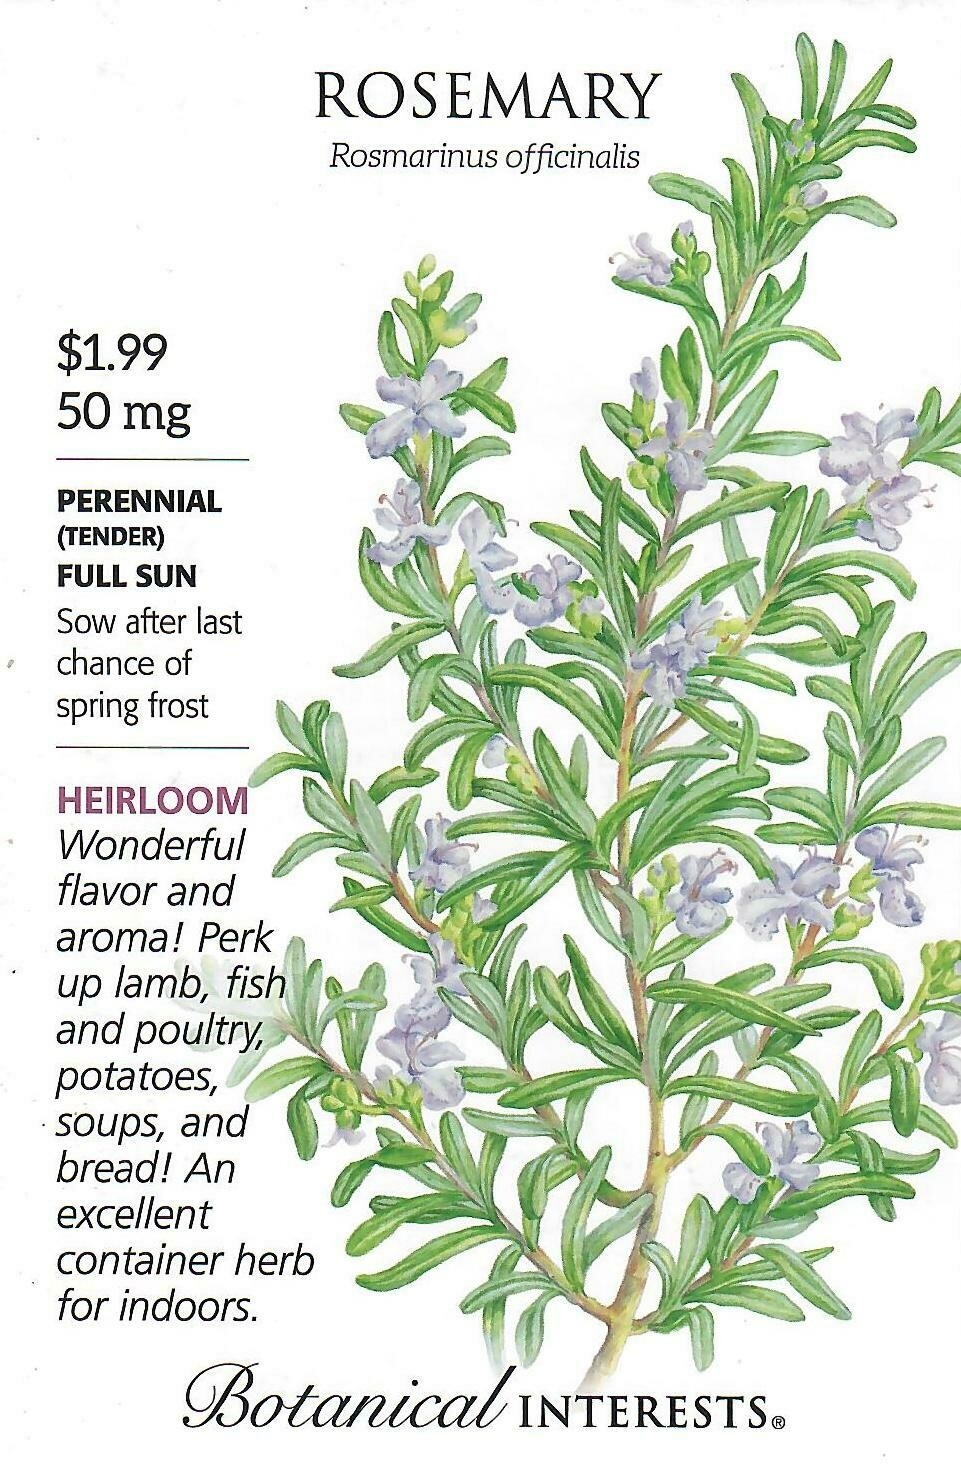 Rosemary Botanical Interests